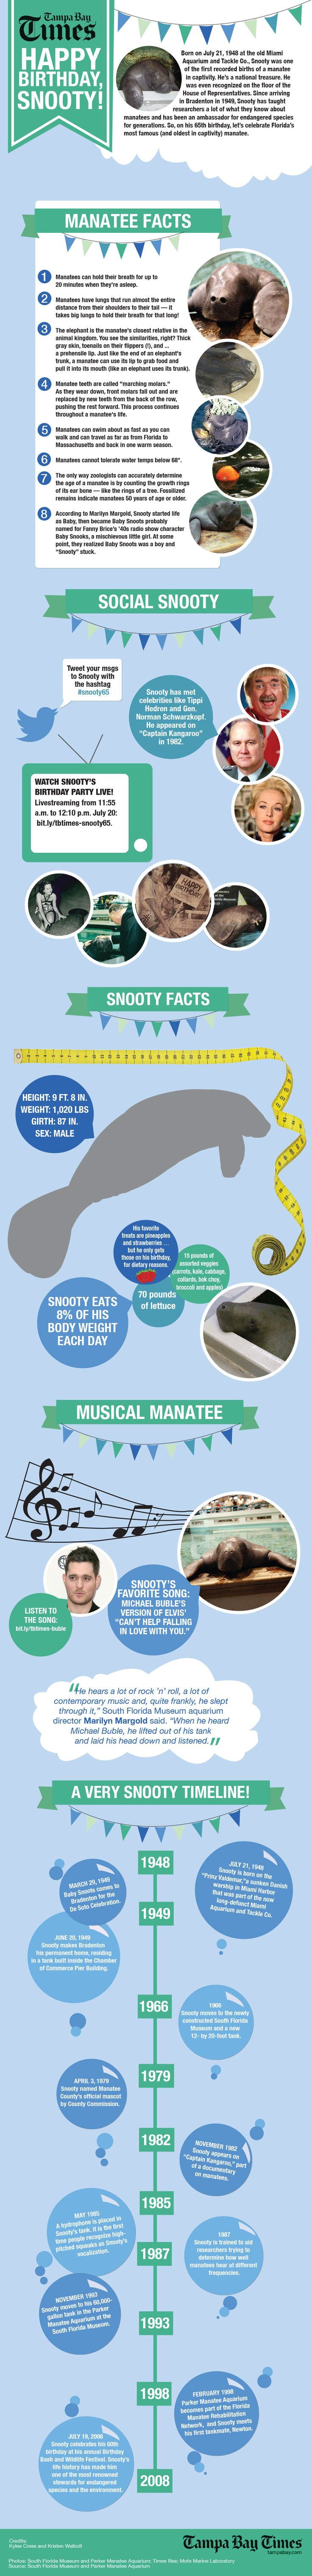 Snooty the manatee turns 65 infographic from the Tampa Bay Times